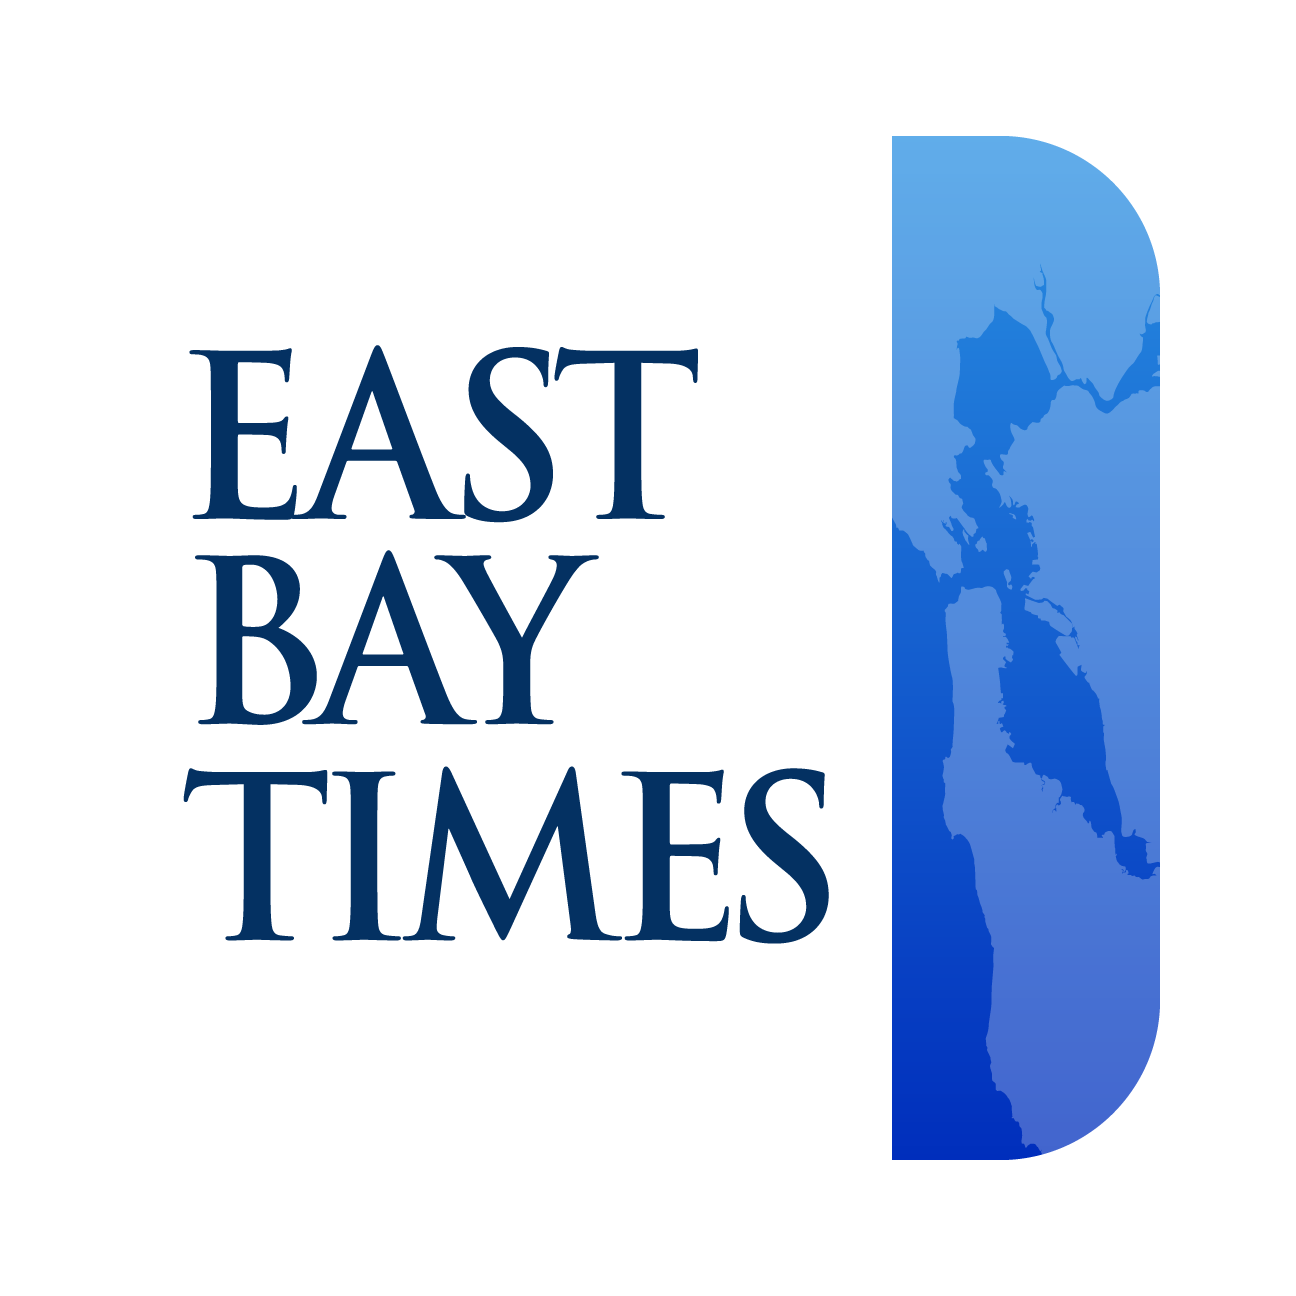 East Bay Times - The Test: How Can We Prevent an Underwater San Francisco?July 2009